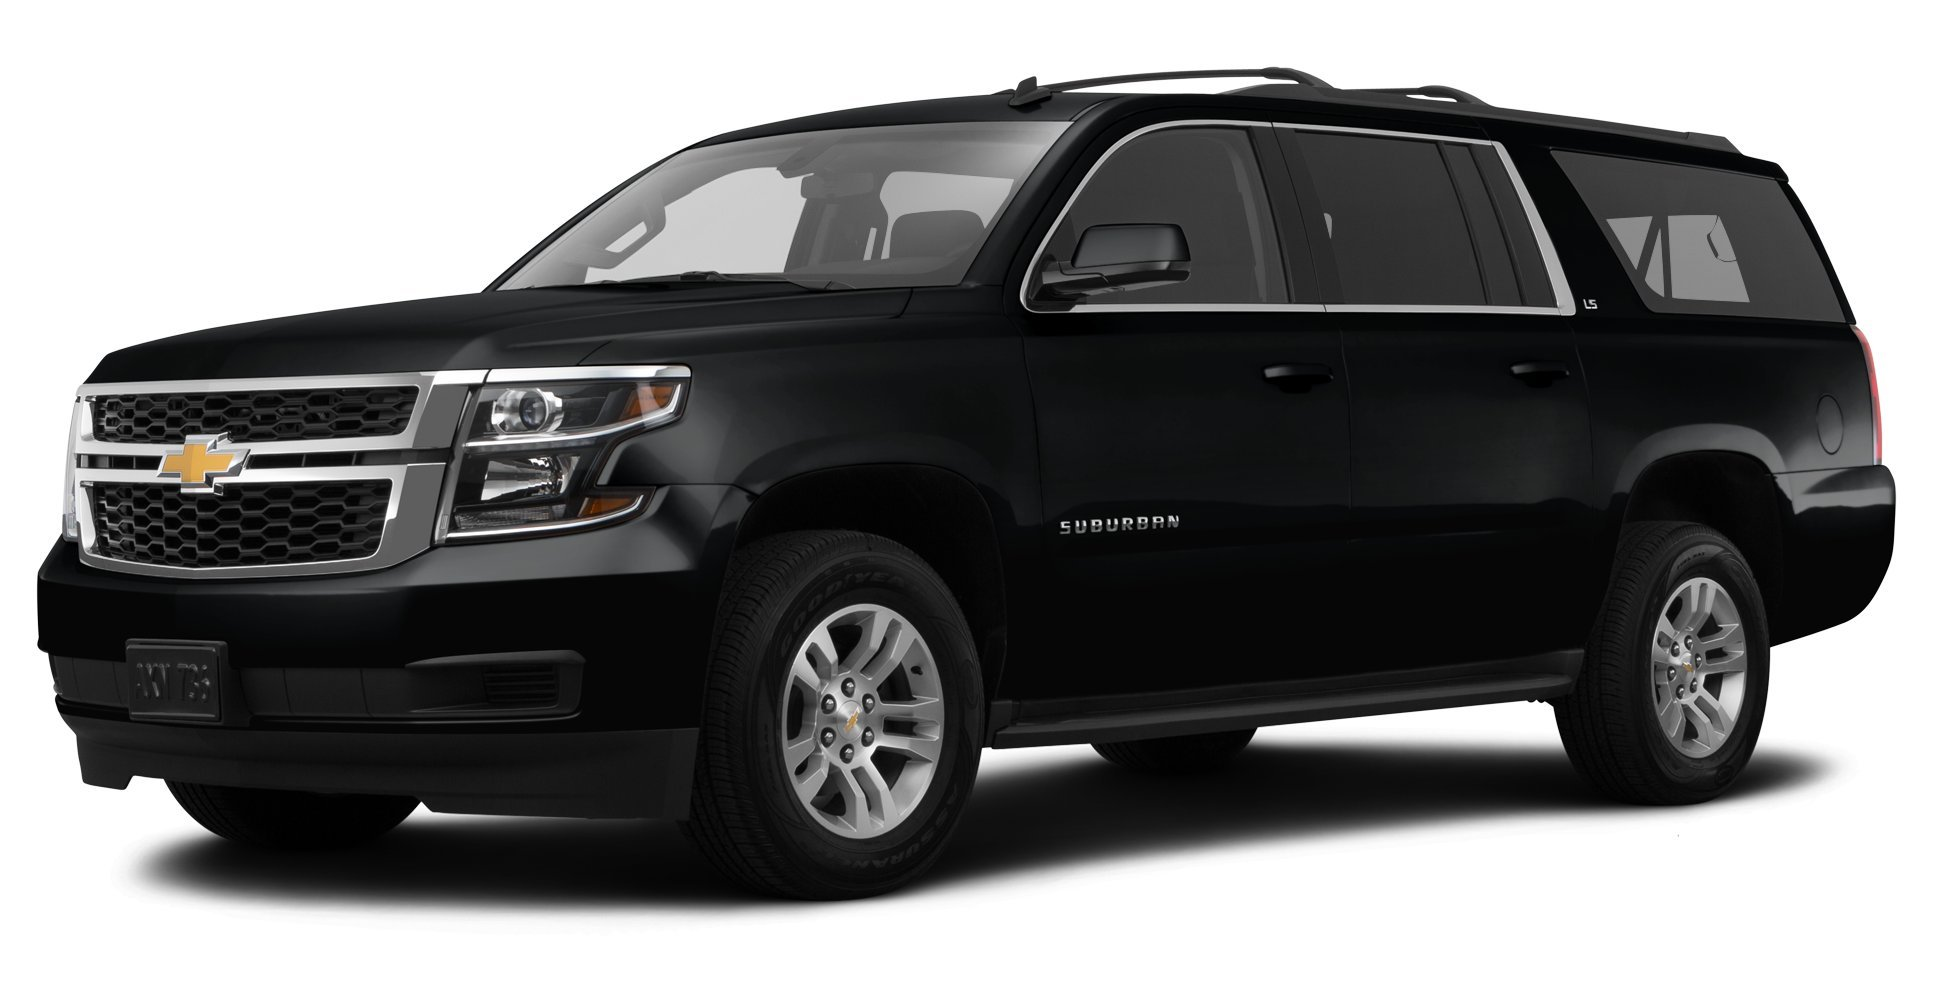 2015 chevrolet suburban reviews images and. Black Bedroom Furniture Sets. Home Design Ideas